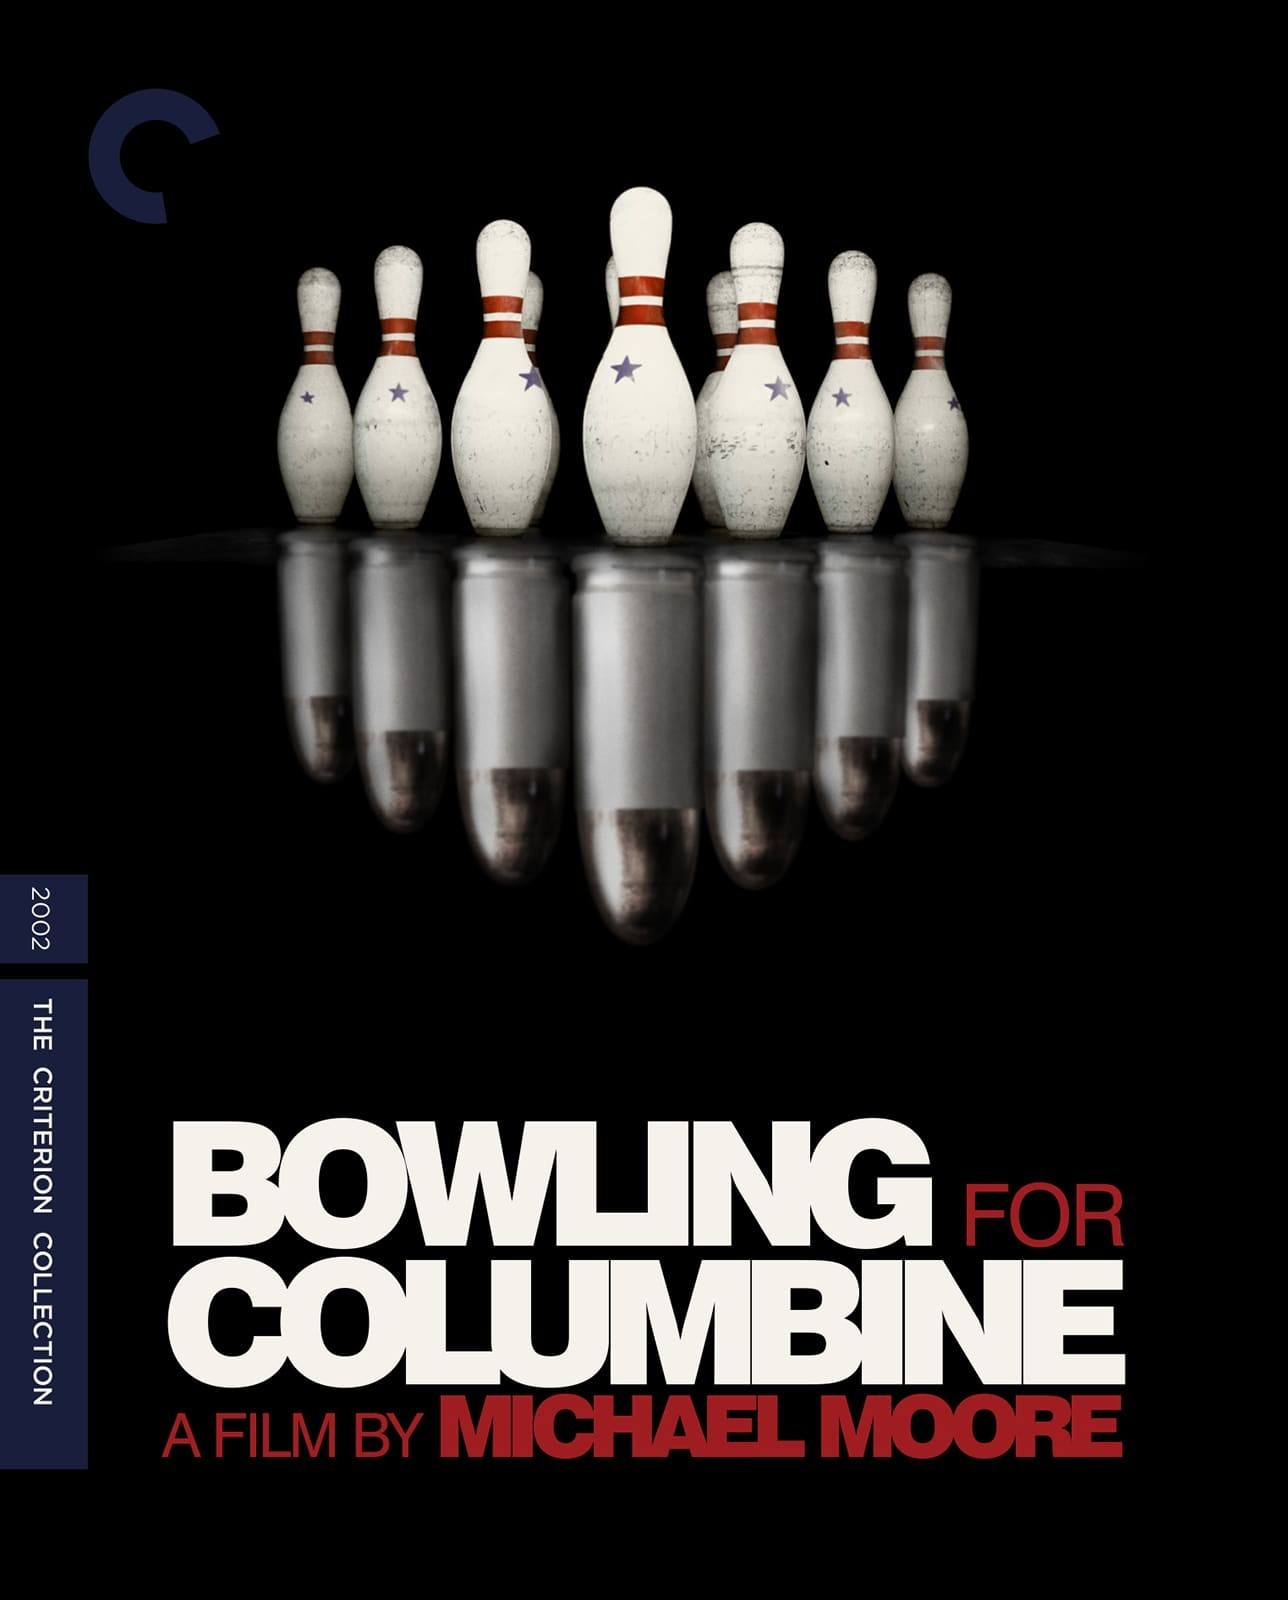 Bowling for Columbine (The Criterion Collection)(2002) Blu-ray